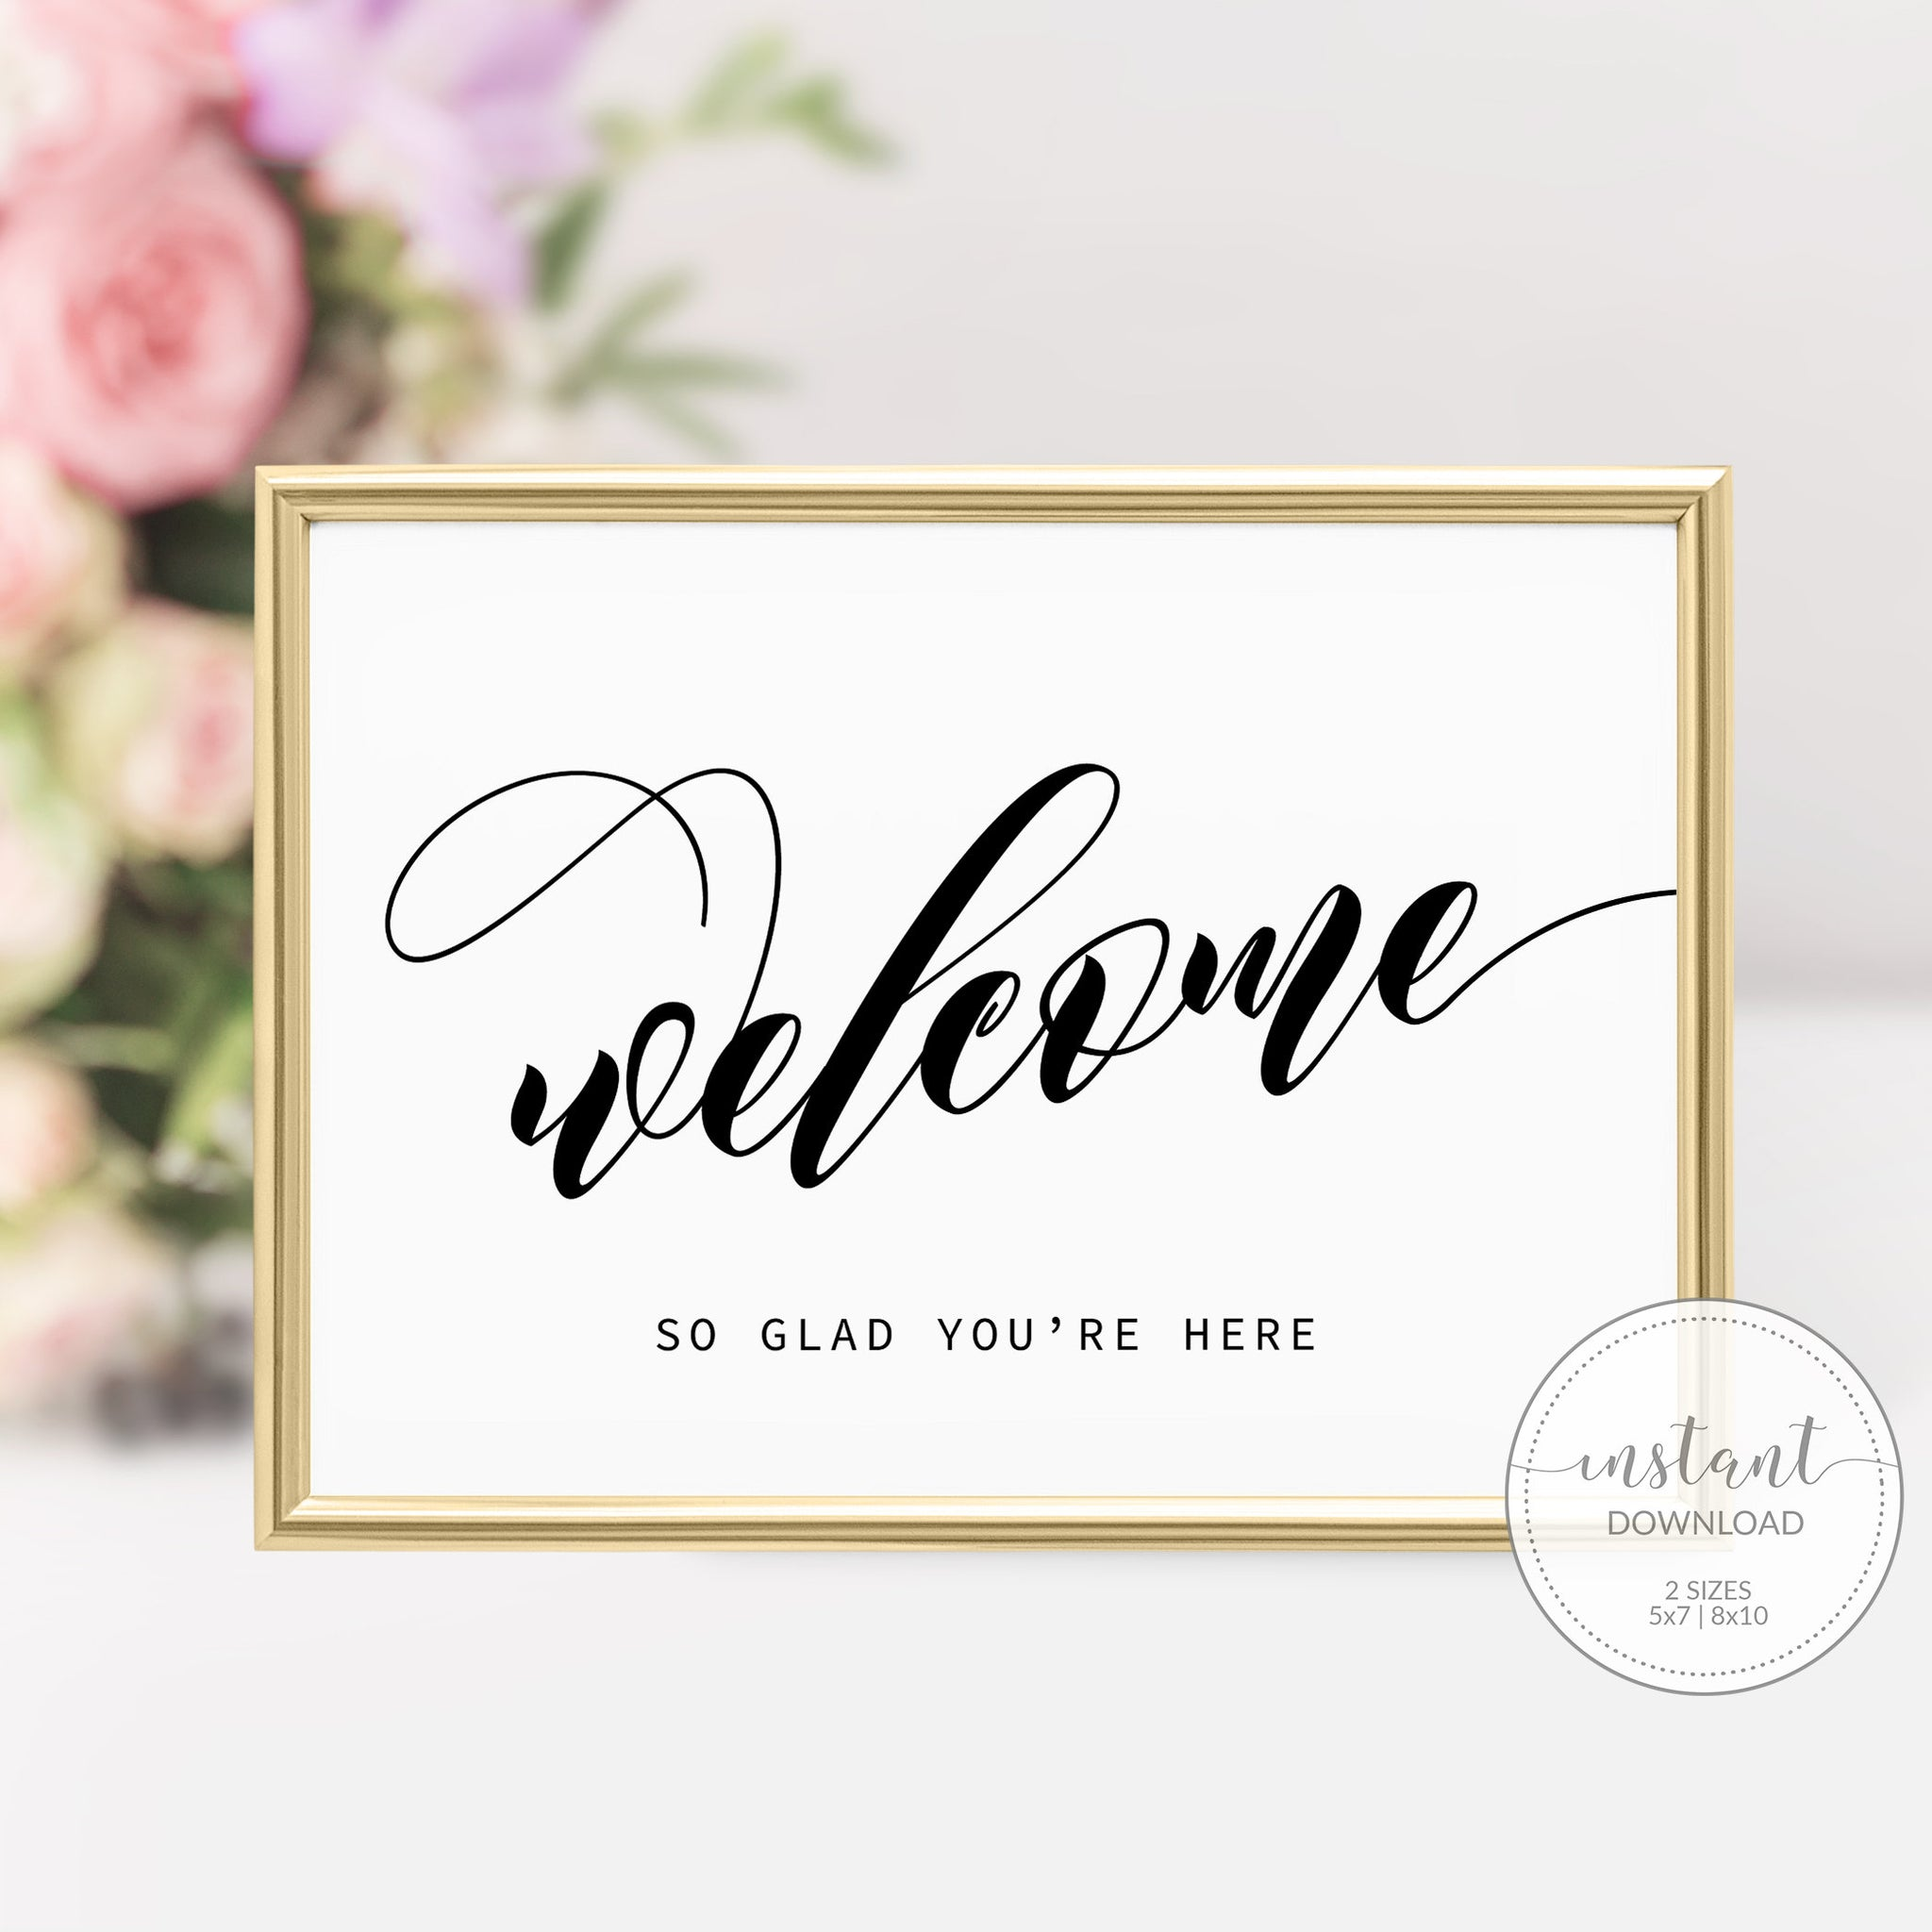 Printable Welcome Sign Black and White, Black Bridal Shower Welcome Sign, Black Baby Shower Welcome Sign, DIGITAL DOWNLOAD - SFB100 - @PlumPolkaDot